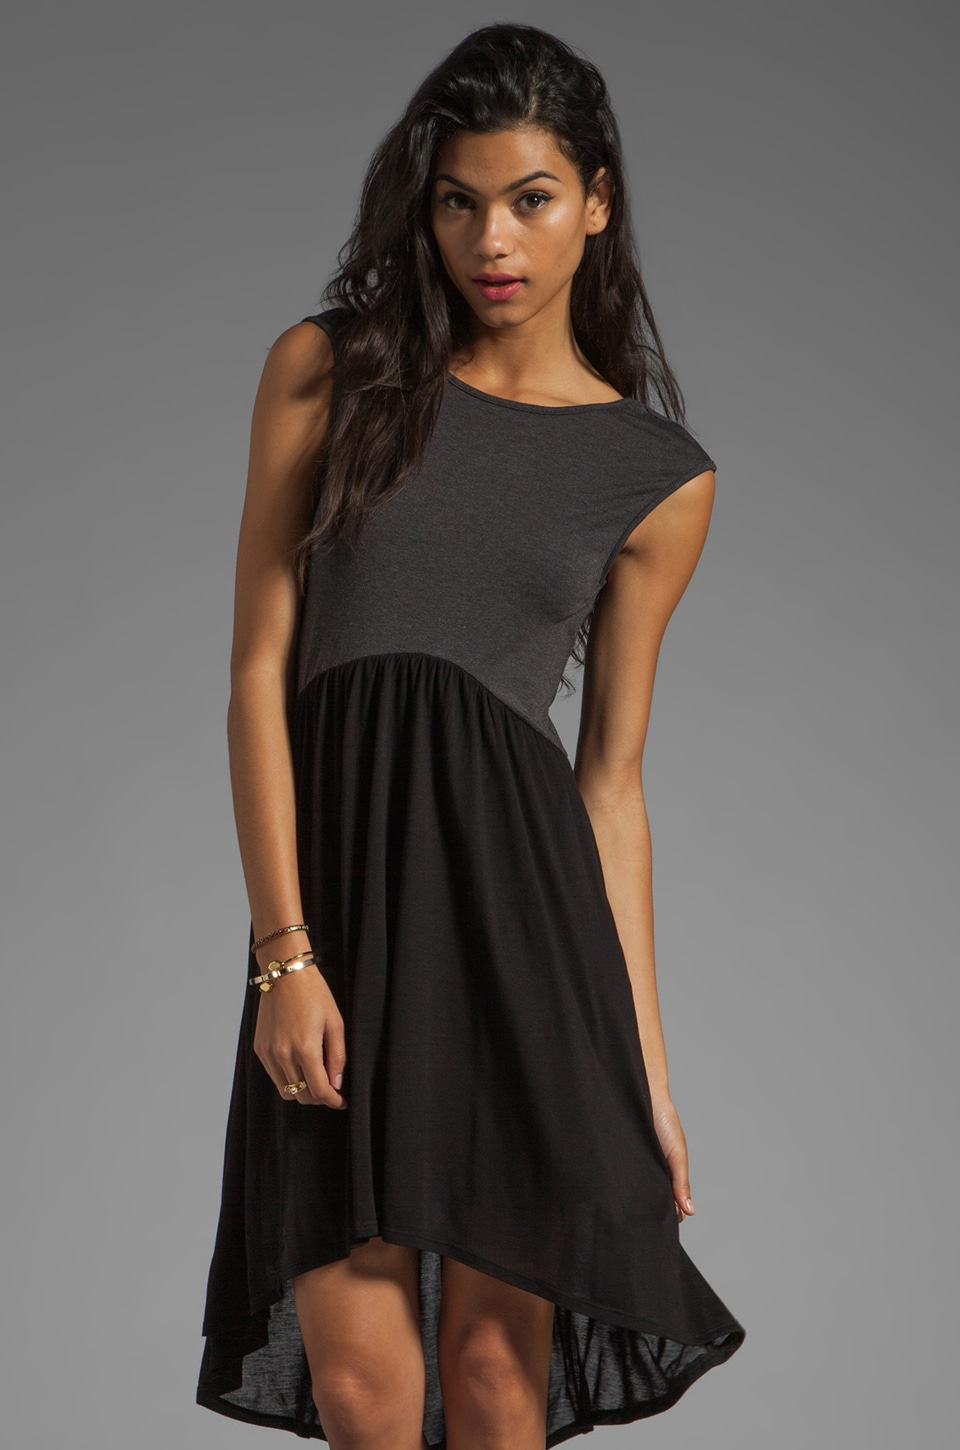 Heather Hi-Lo Ballet Dress in Black